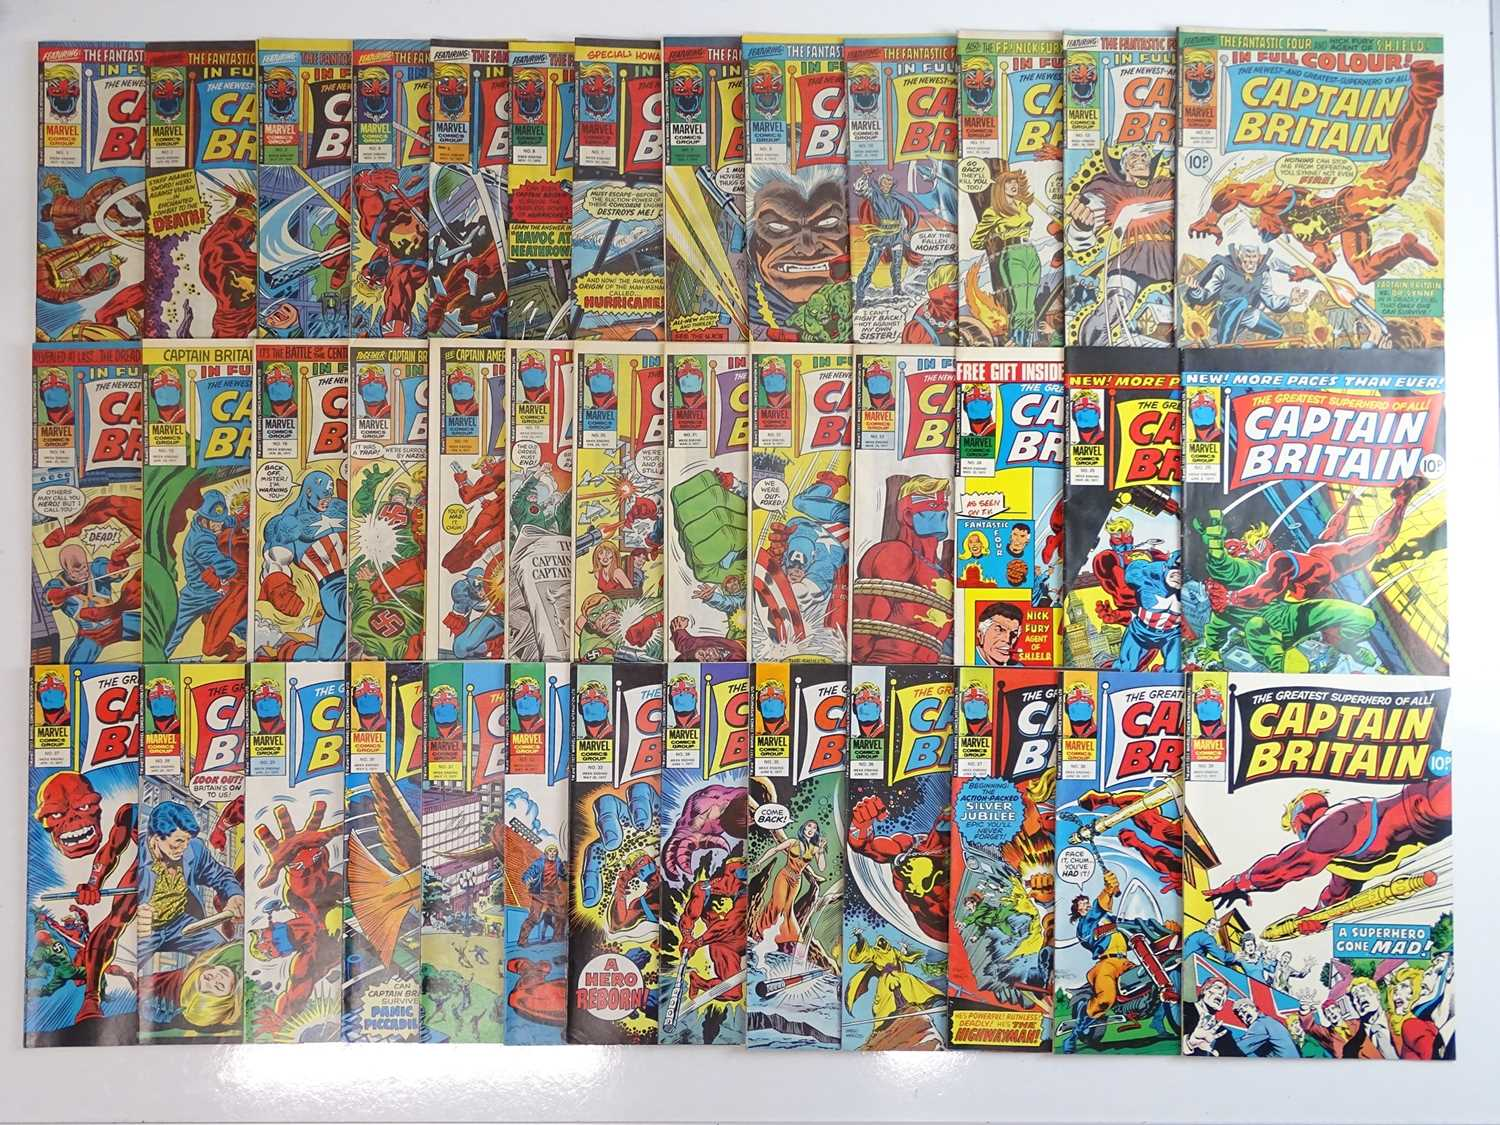 CAPTAIN BRITAIN #1 to 39 - (39 in Lot) - (1976/77 - BRITISH MARVEL) - Complete 39 issue run from #